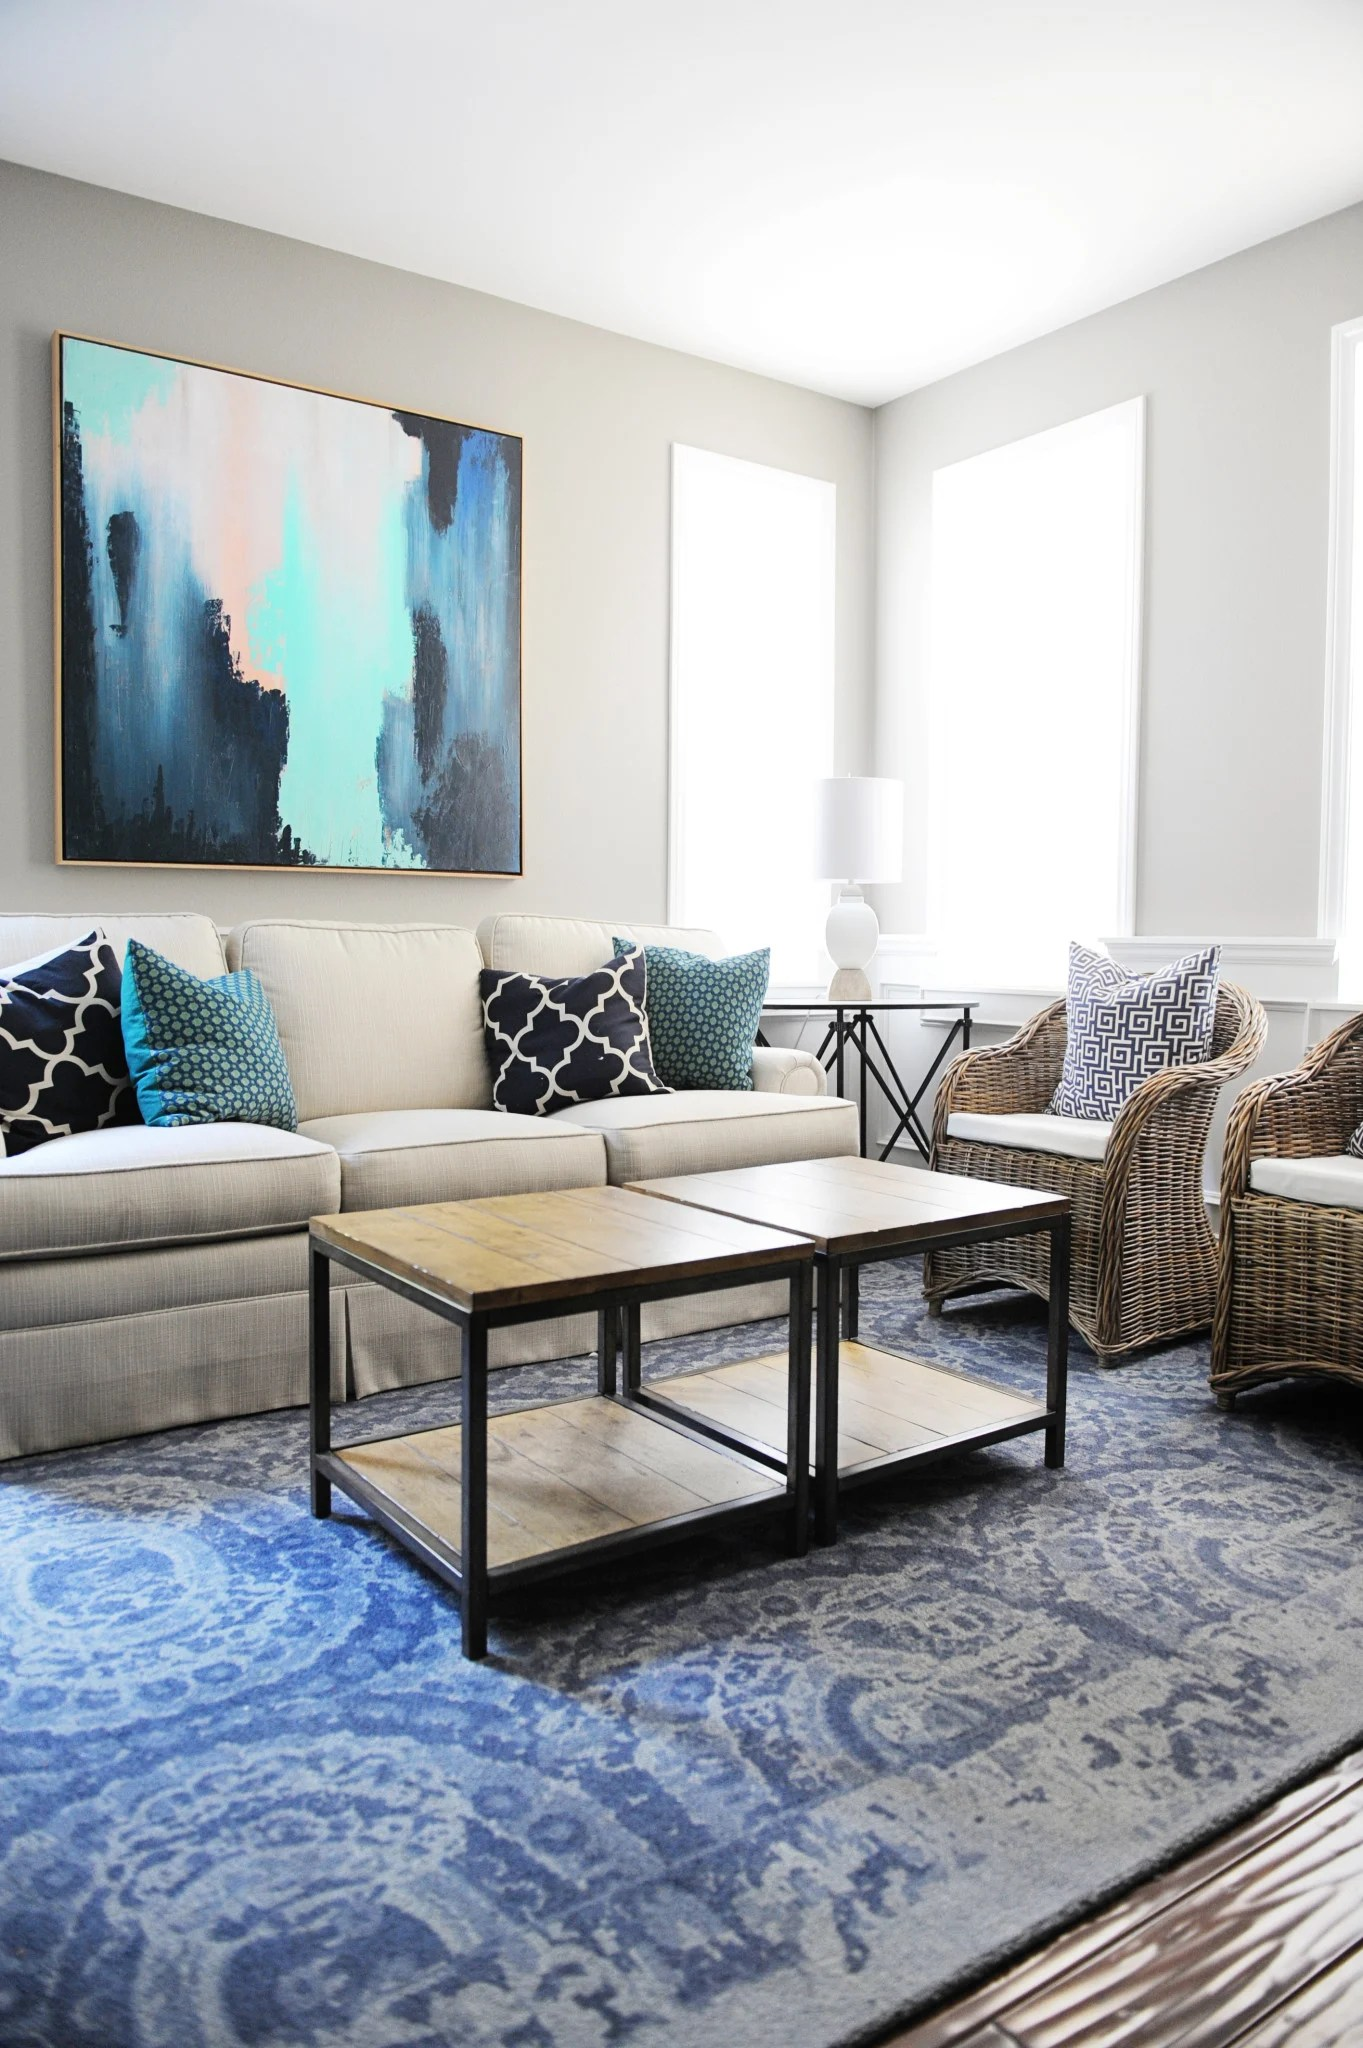 Living Room Ideas: Make Over Update and My Current Favorite Fabrics for Pillows